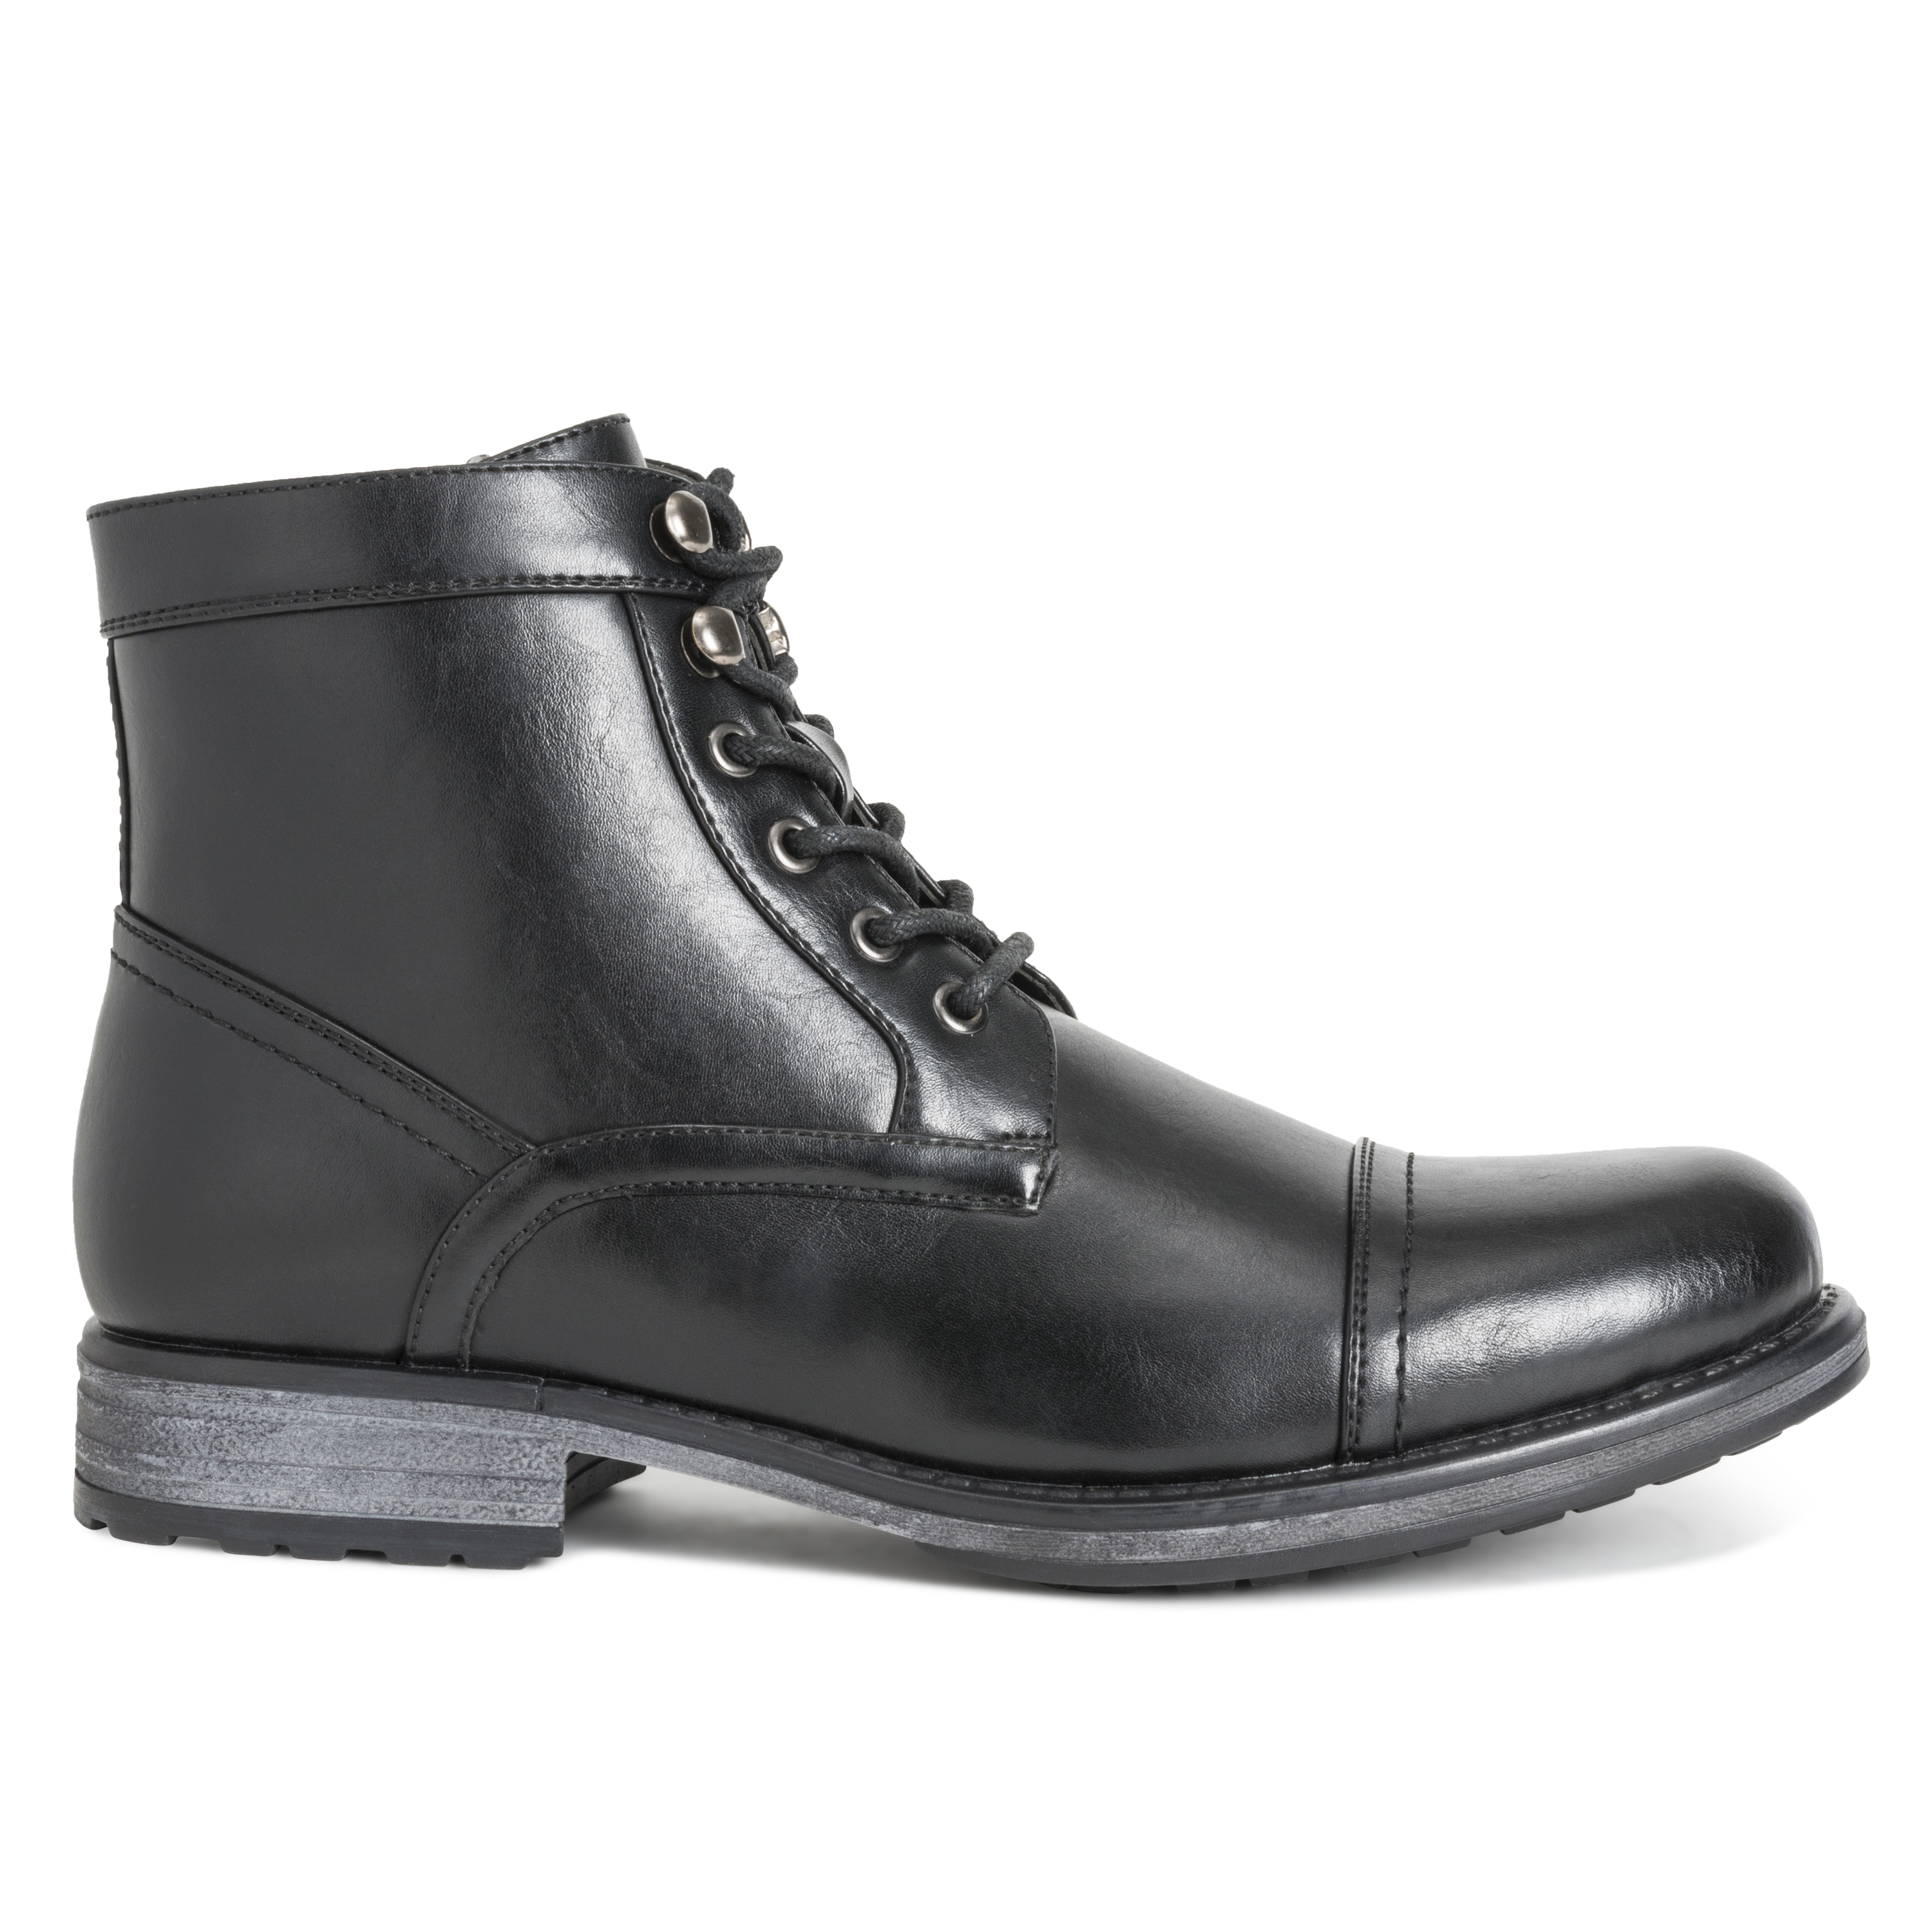 Mens Queensberry Albert Smart Leather Business Work Office Ankle Boots